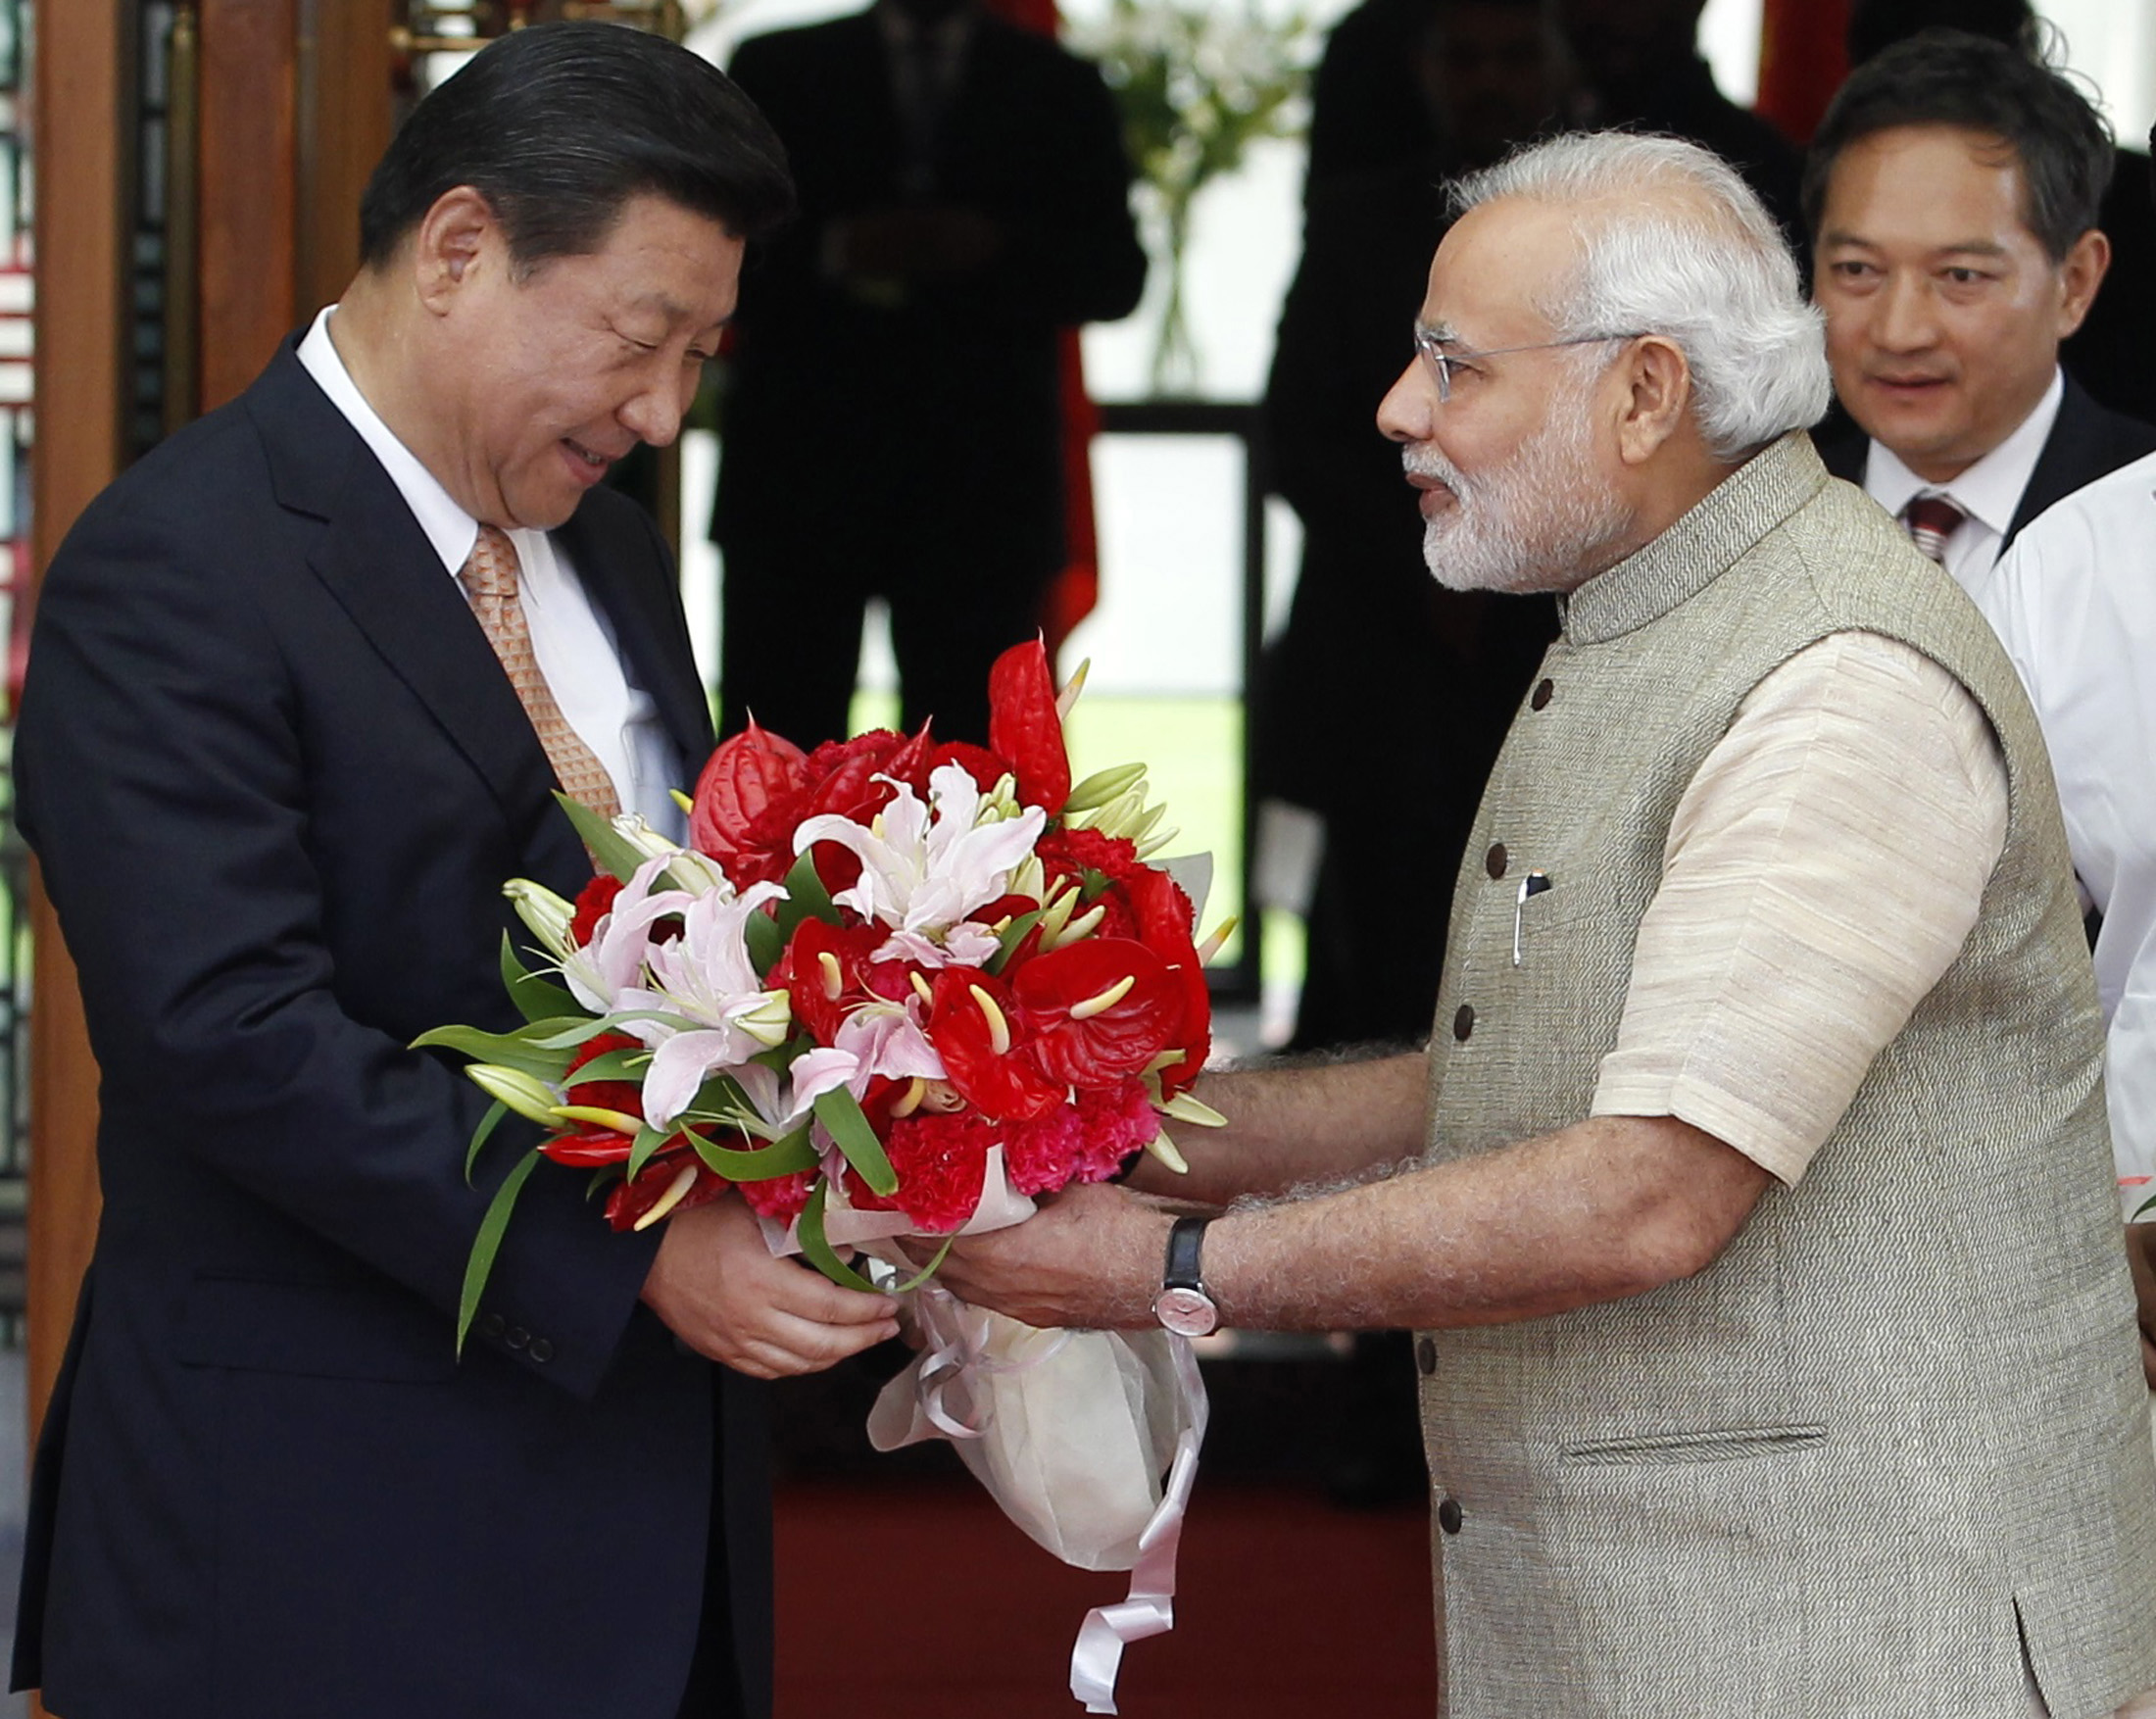 India's Prime Minister Narendra Modi, right, presents a bouquet to China's President Xi Jinping before their meeting in the western Indian city of Ahmedabad on Sept. 17, 2014